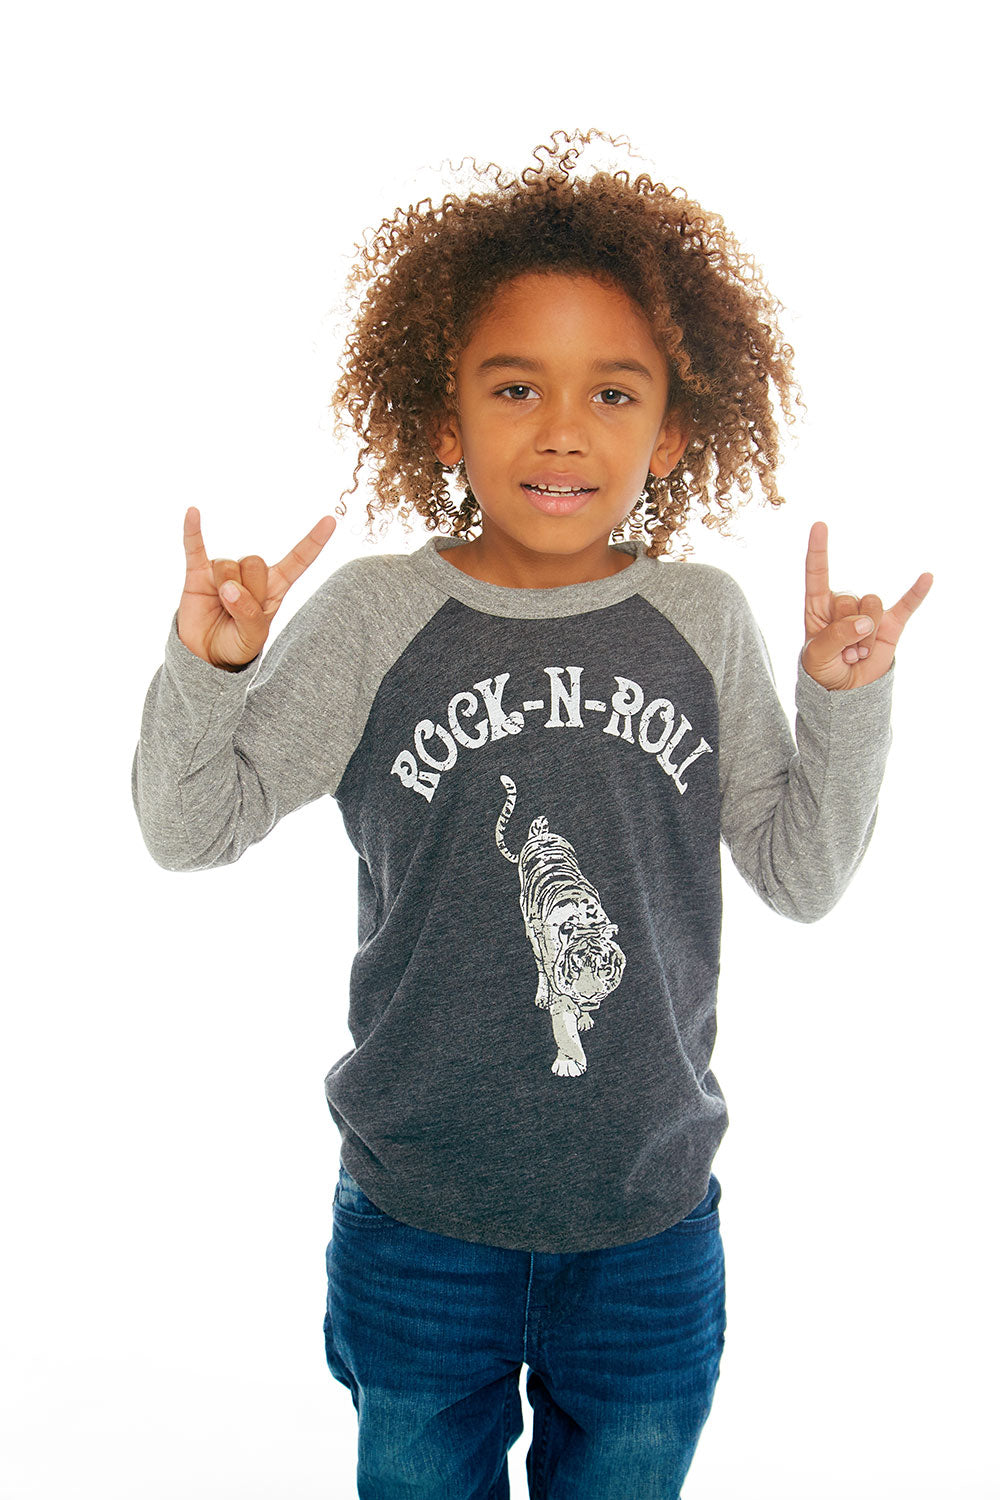 Rock-N-Roll Tiger, BOYS, chaserbrand.com,chaser clothing,chaser apparel,chaser los angeles